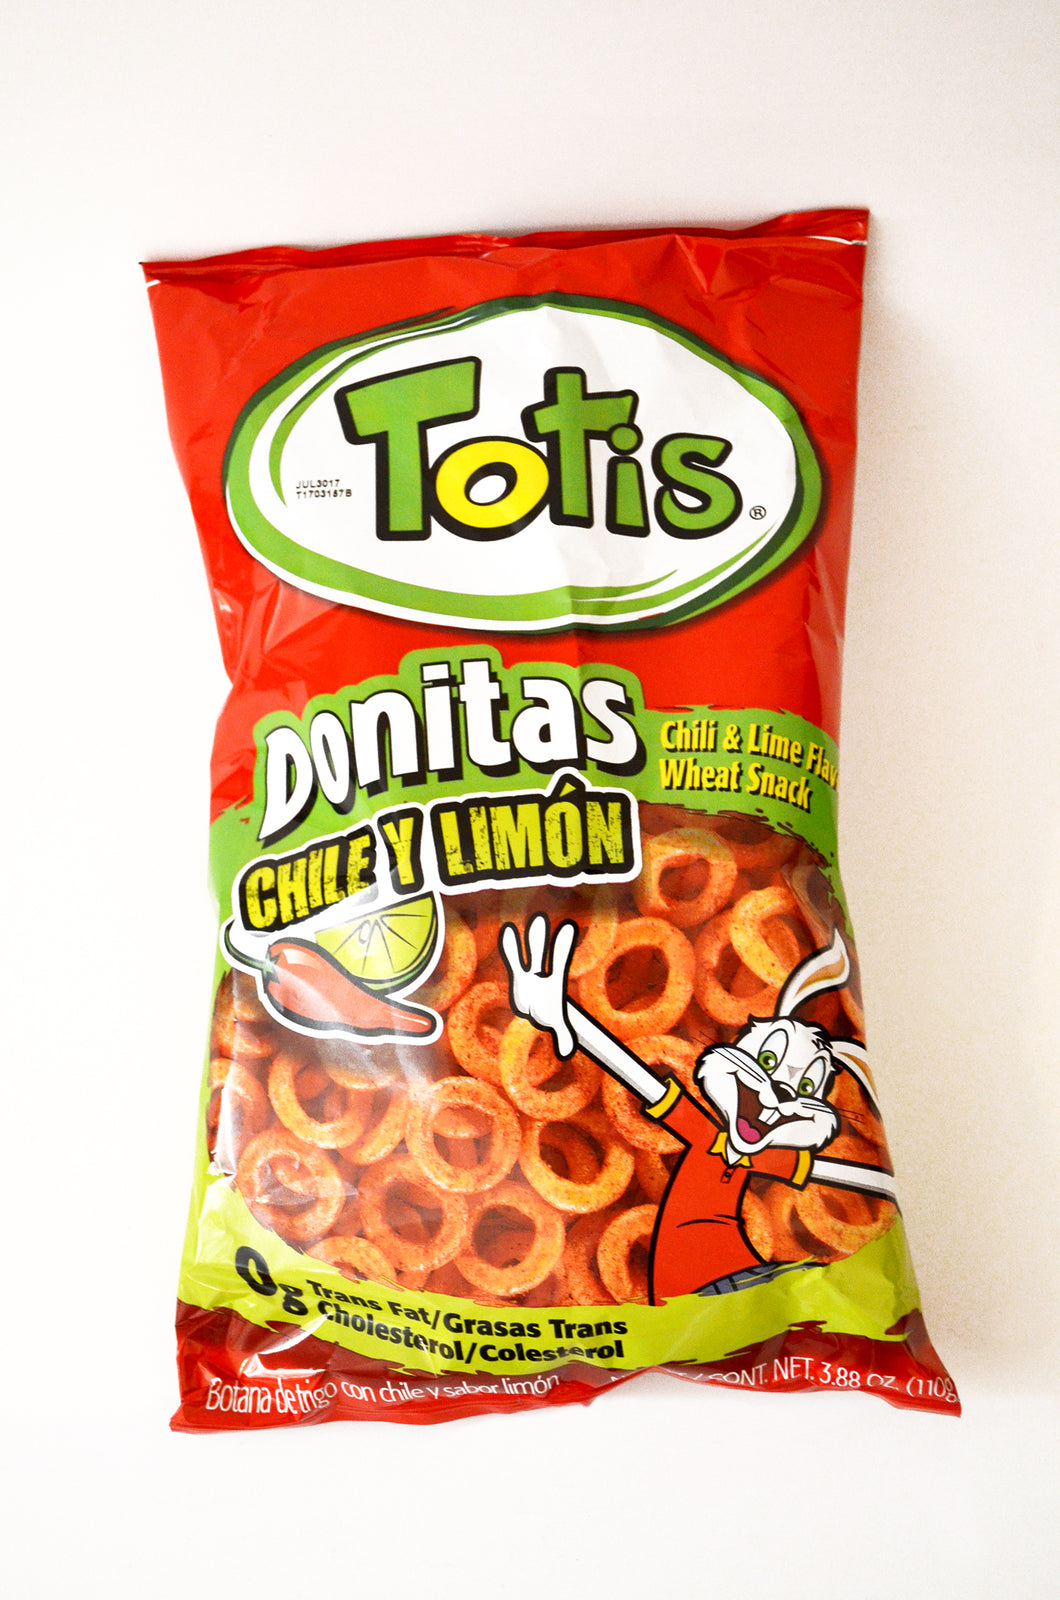 Totis chili and lime flavored wheat snack